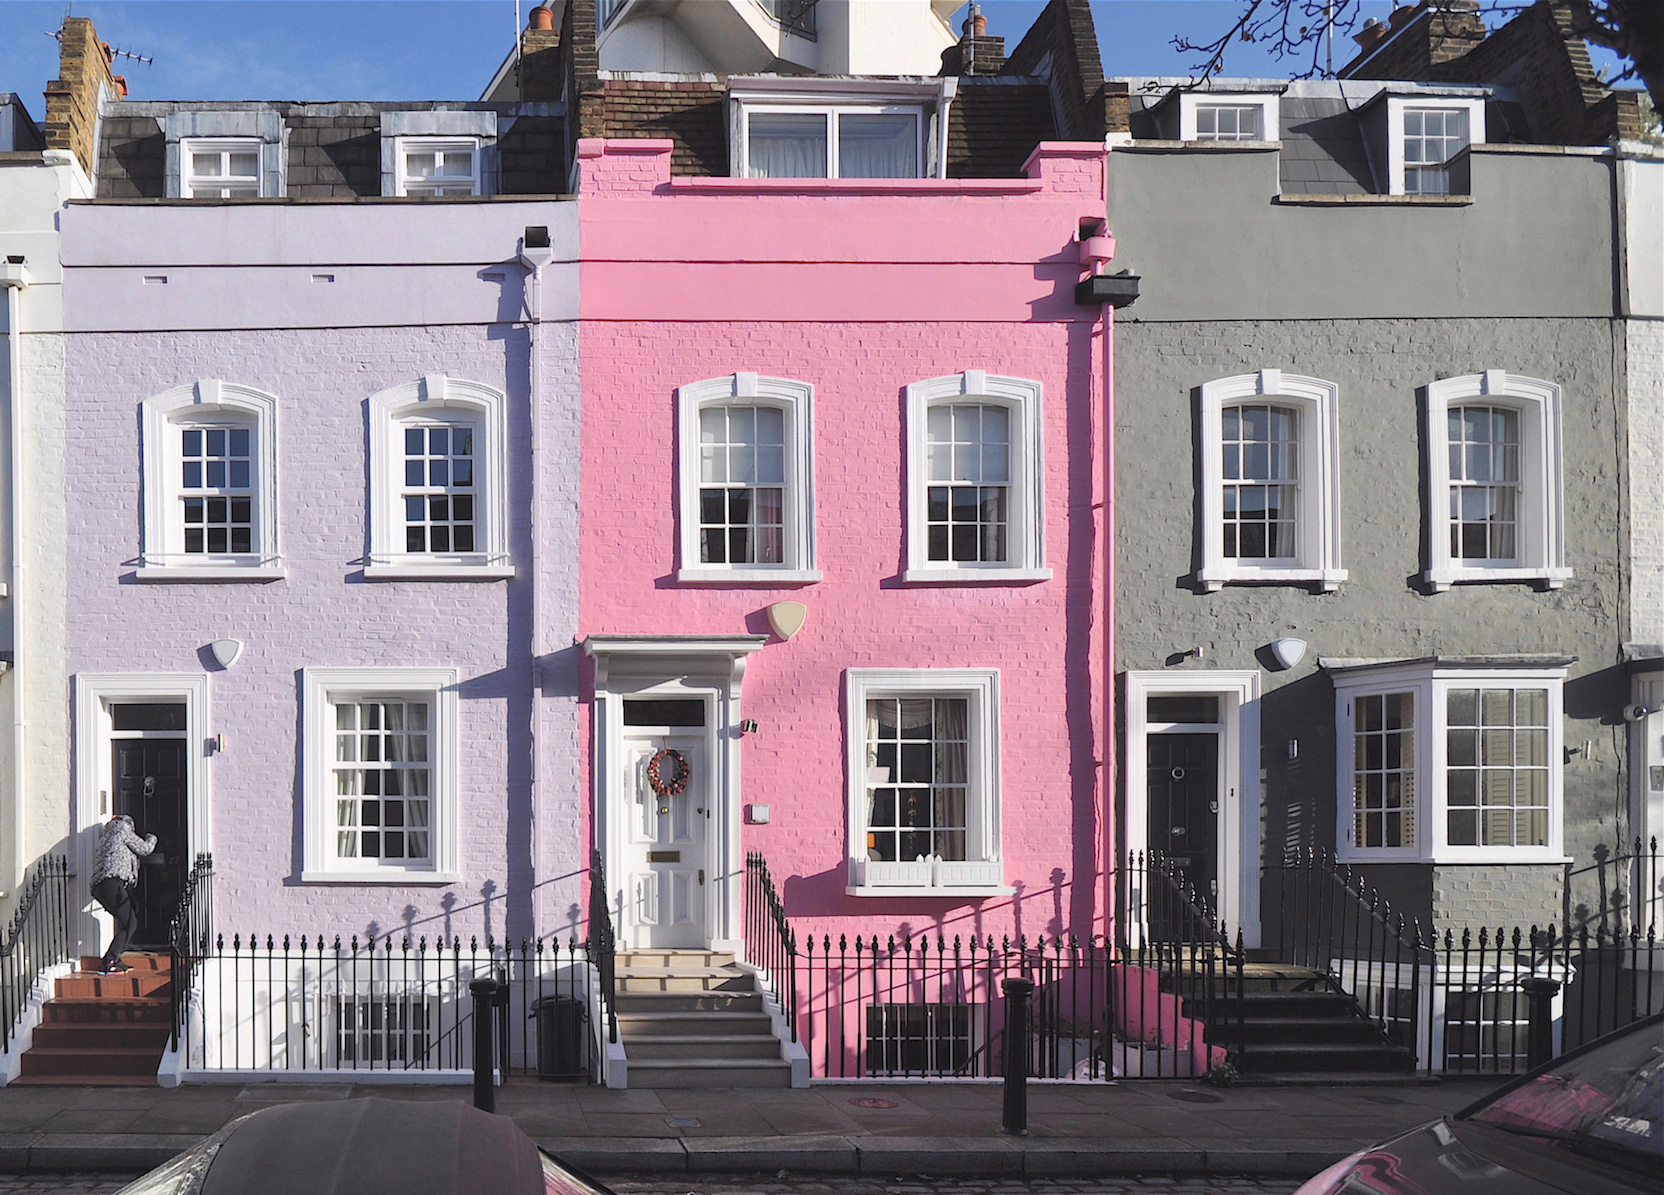 The price of houses in London and the United Kingdom is downright unattainable for many. Here are a few of the alternative housing heroes of Britain.